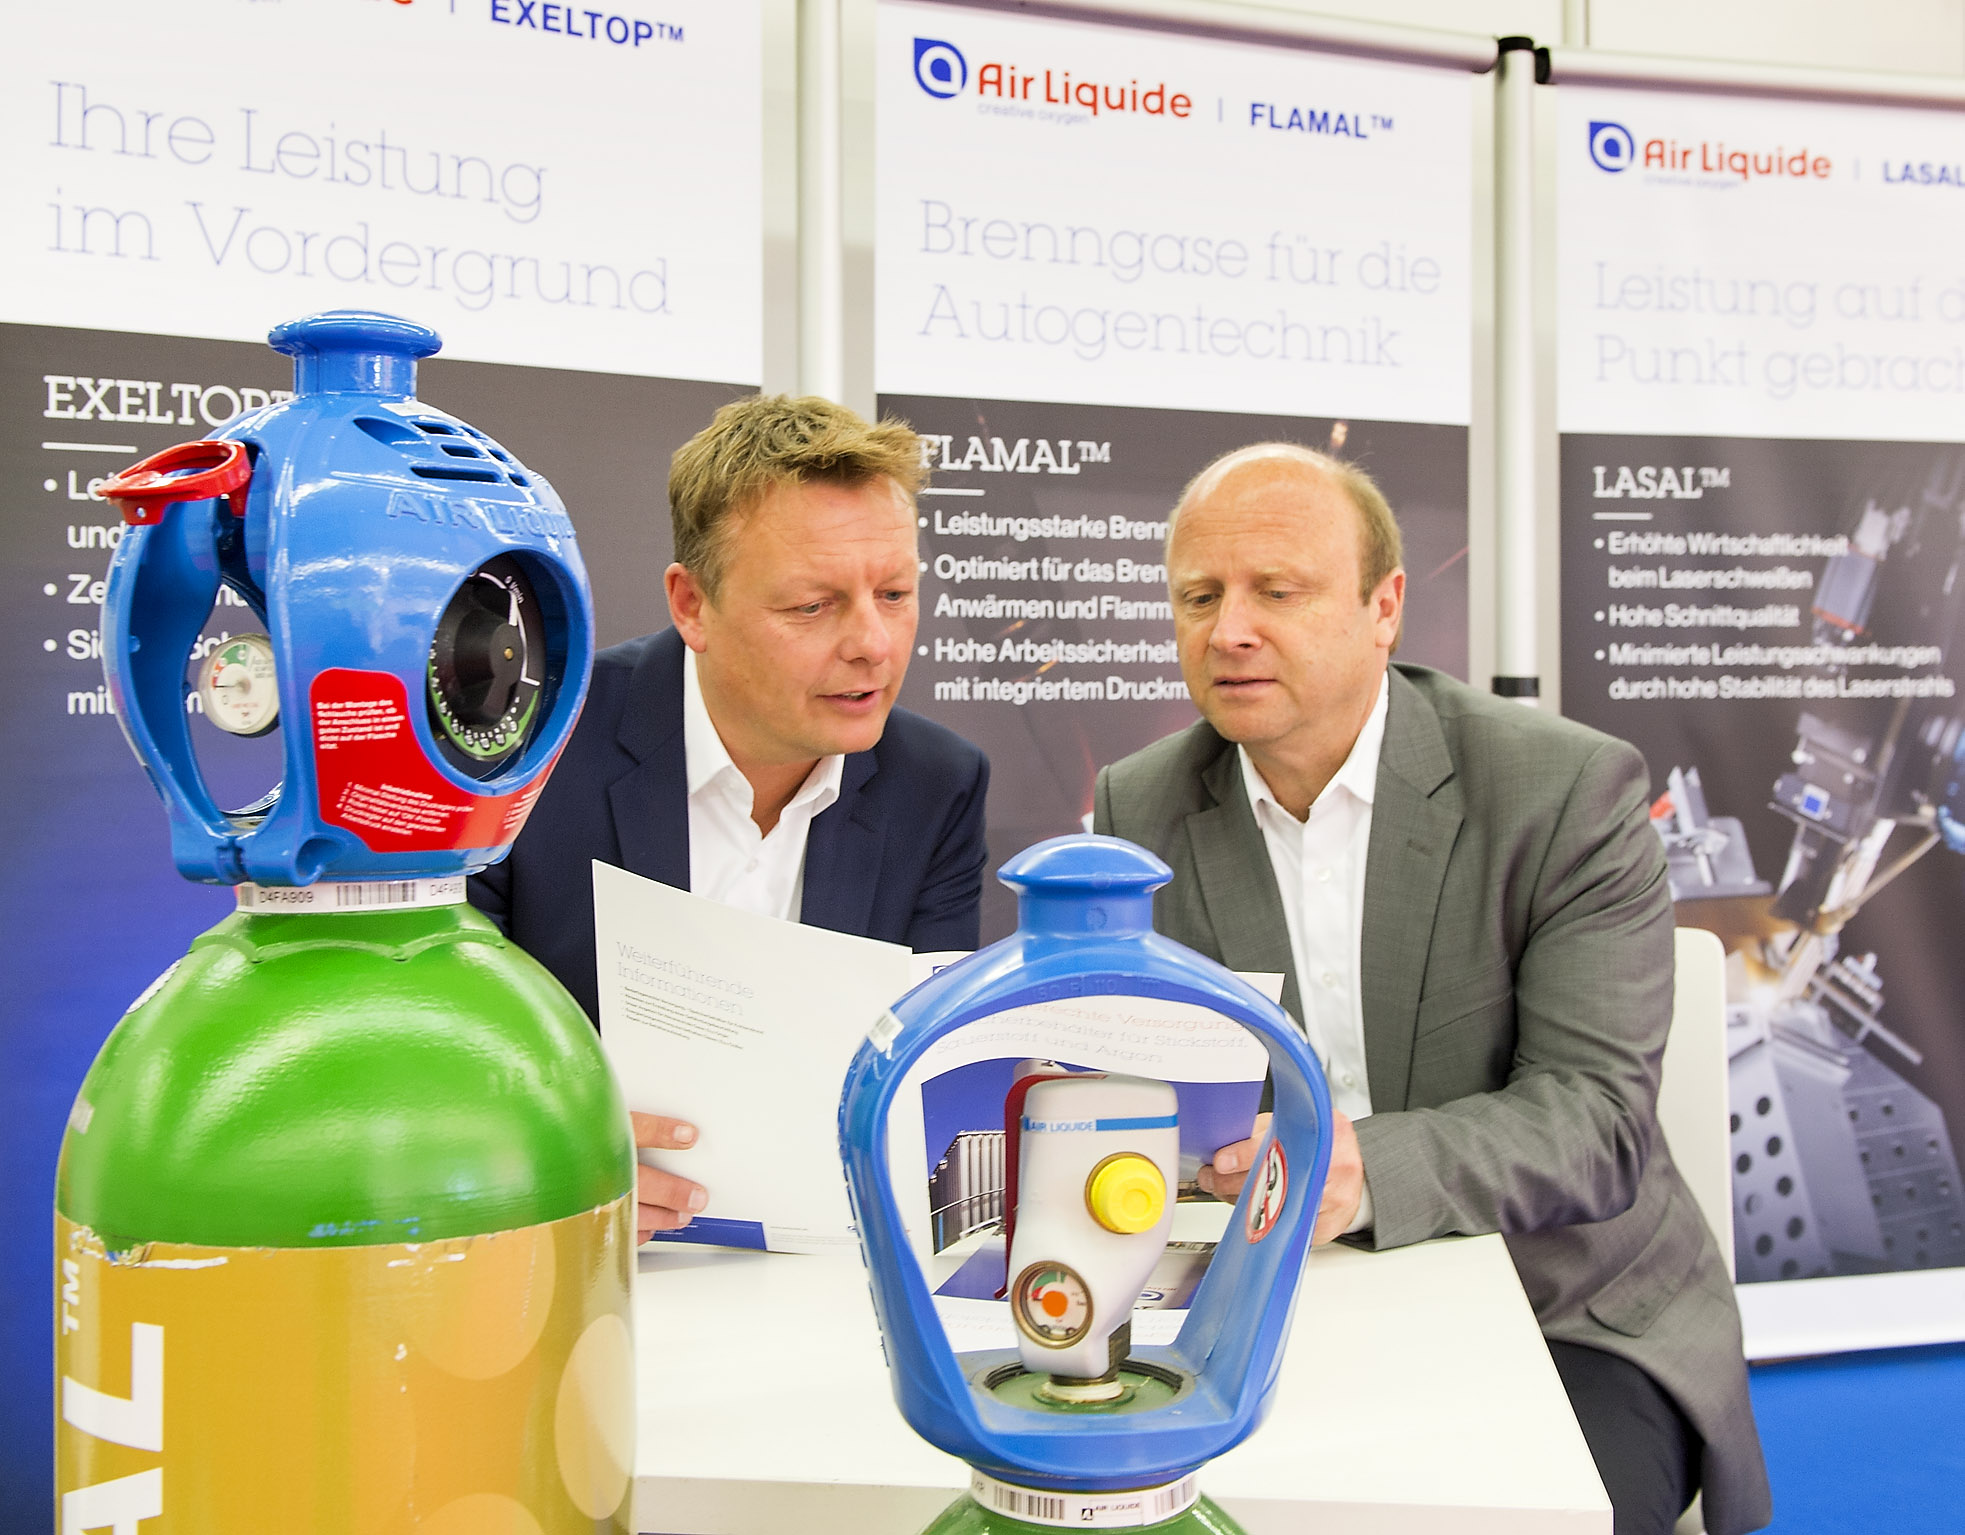 CUTTING WORLD: Airliquide